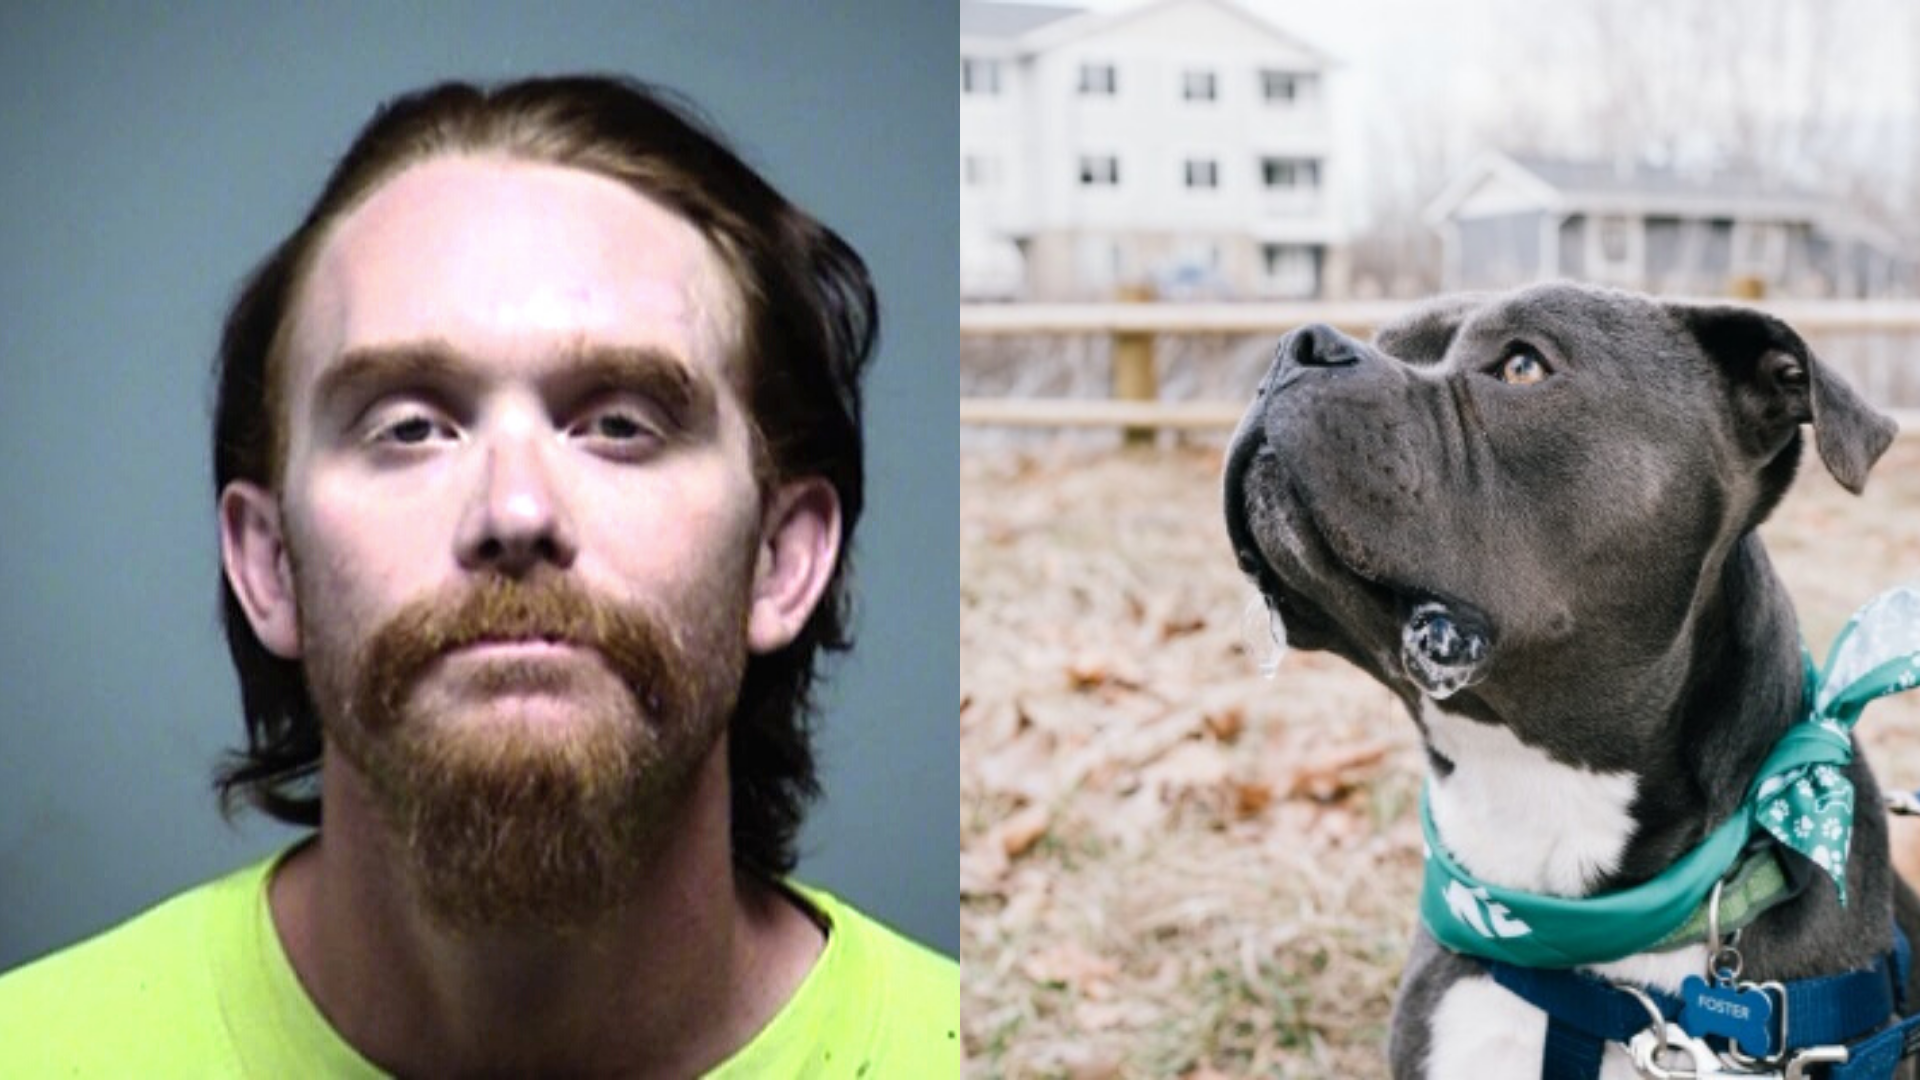 This Monster Just Came Out of Jail and Decided to Get & Abuse Dogs to Celebrate His Release! |